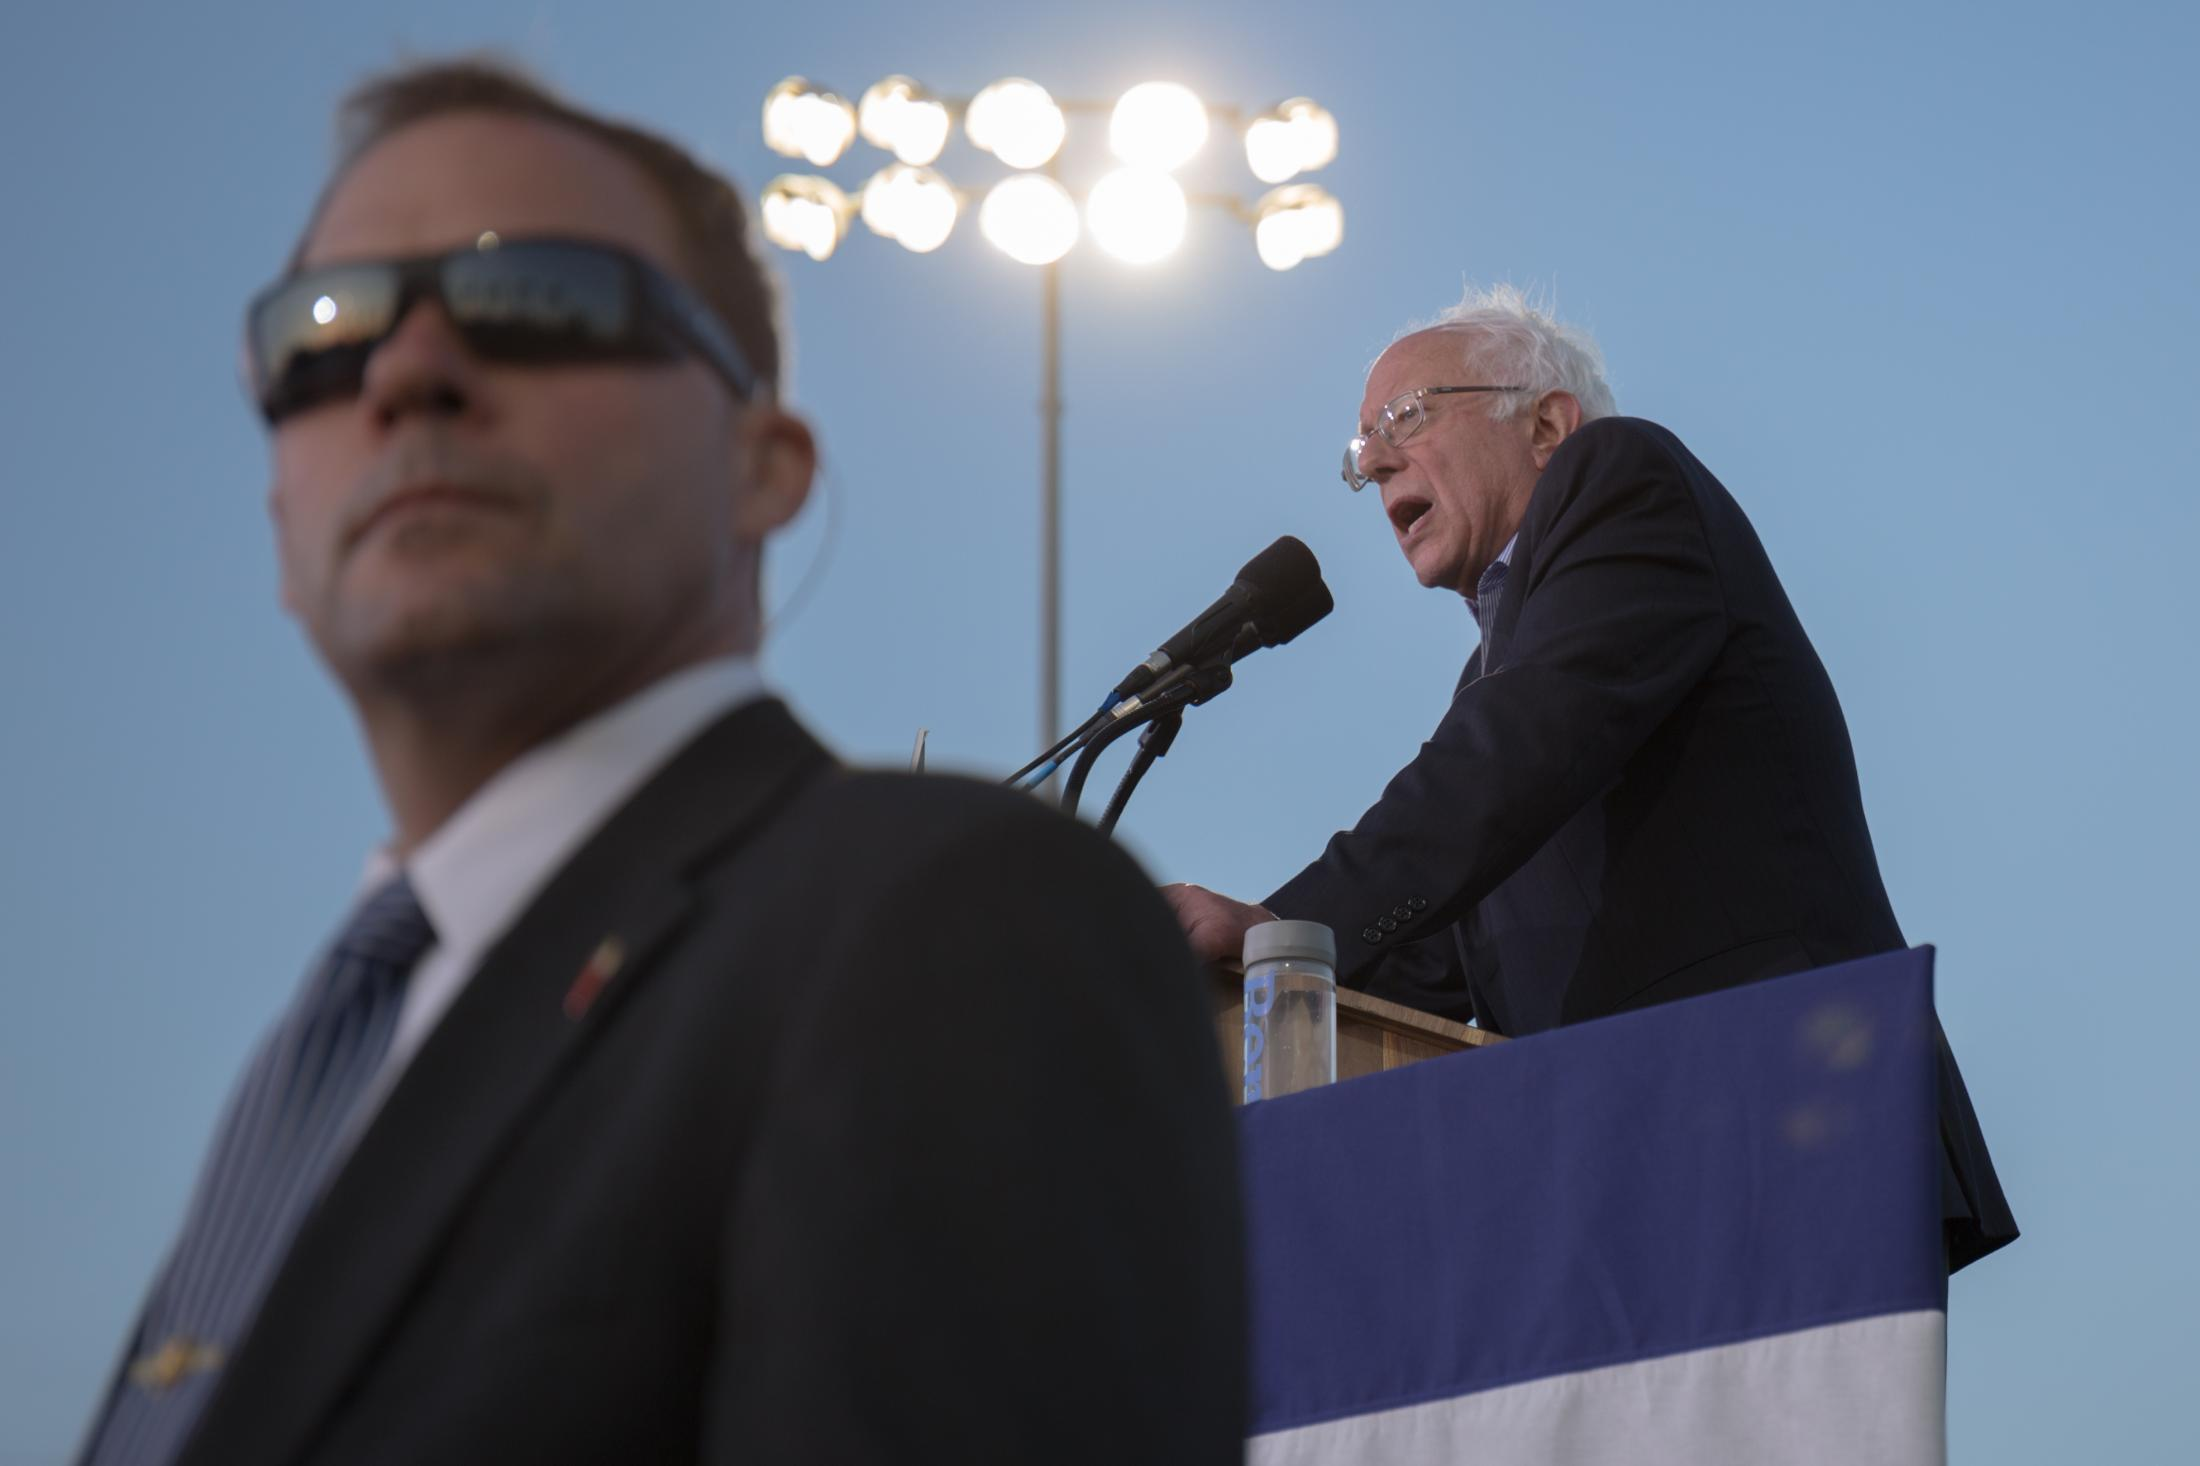 Vermont Senator Bernie Sanders gives a speech while a member of the Secret Service watches the crowd around him at Santa Monica High School on May 23, 2016.